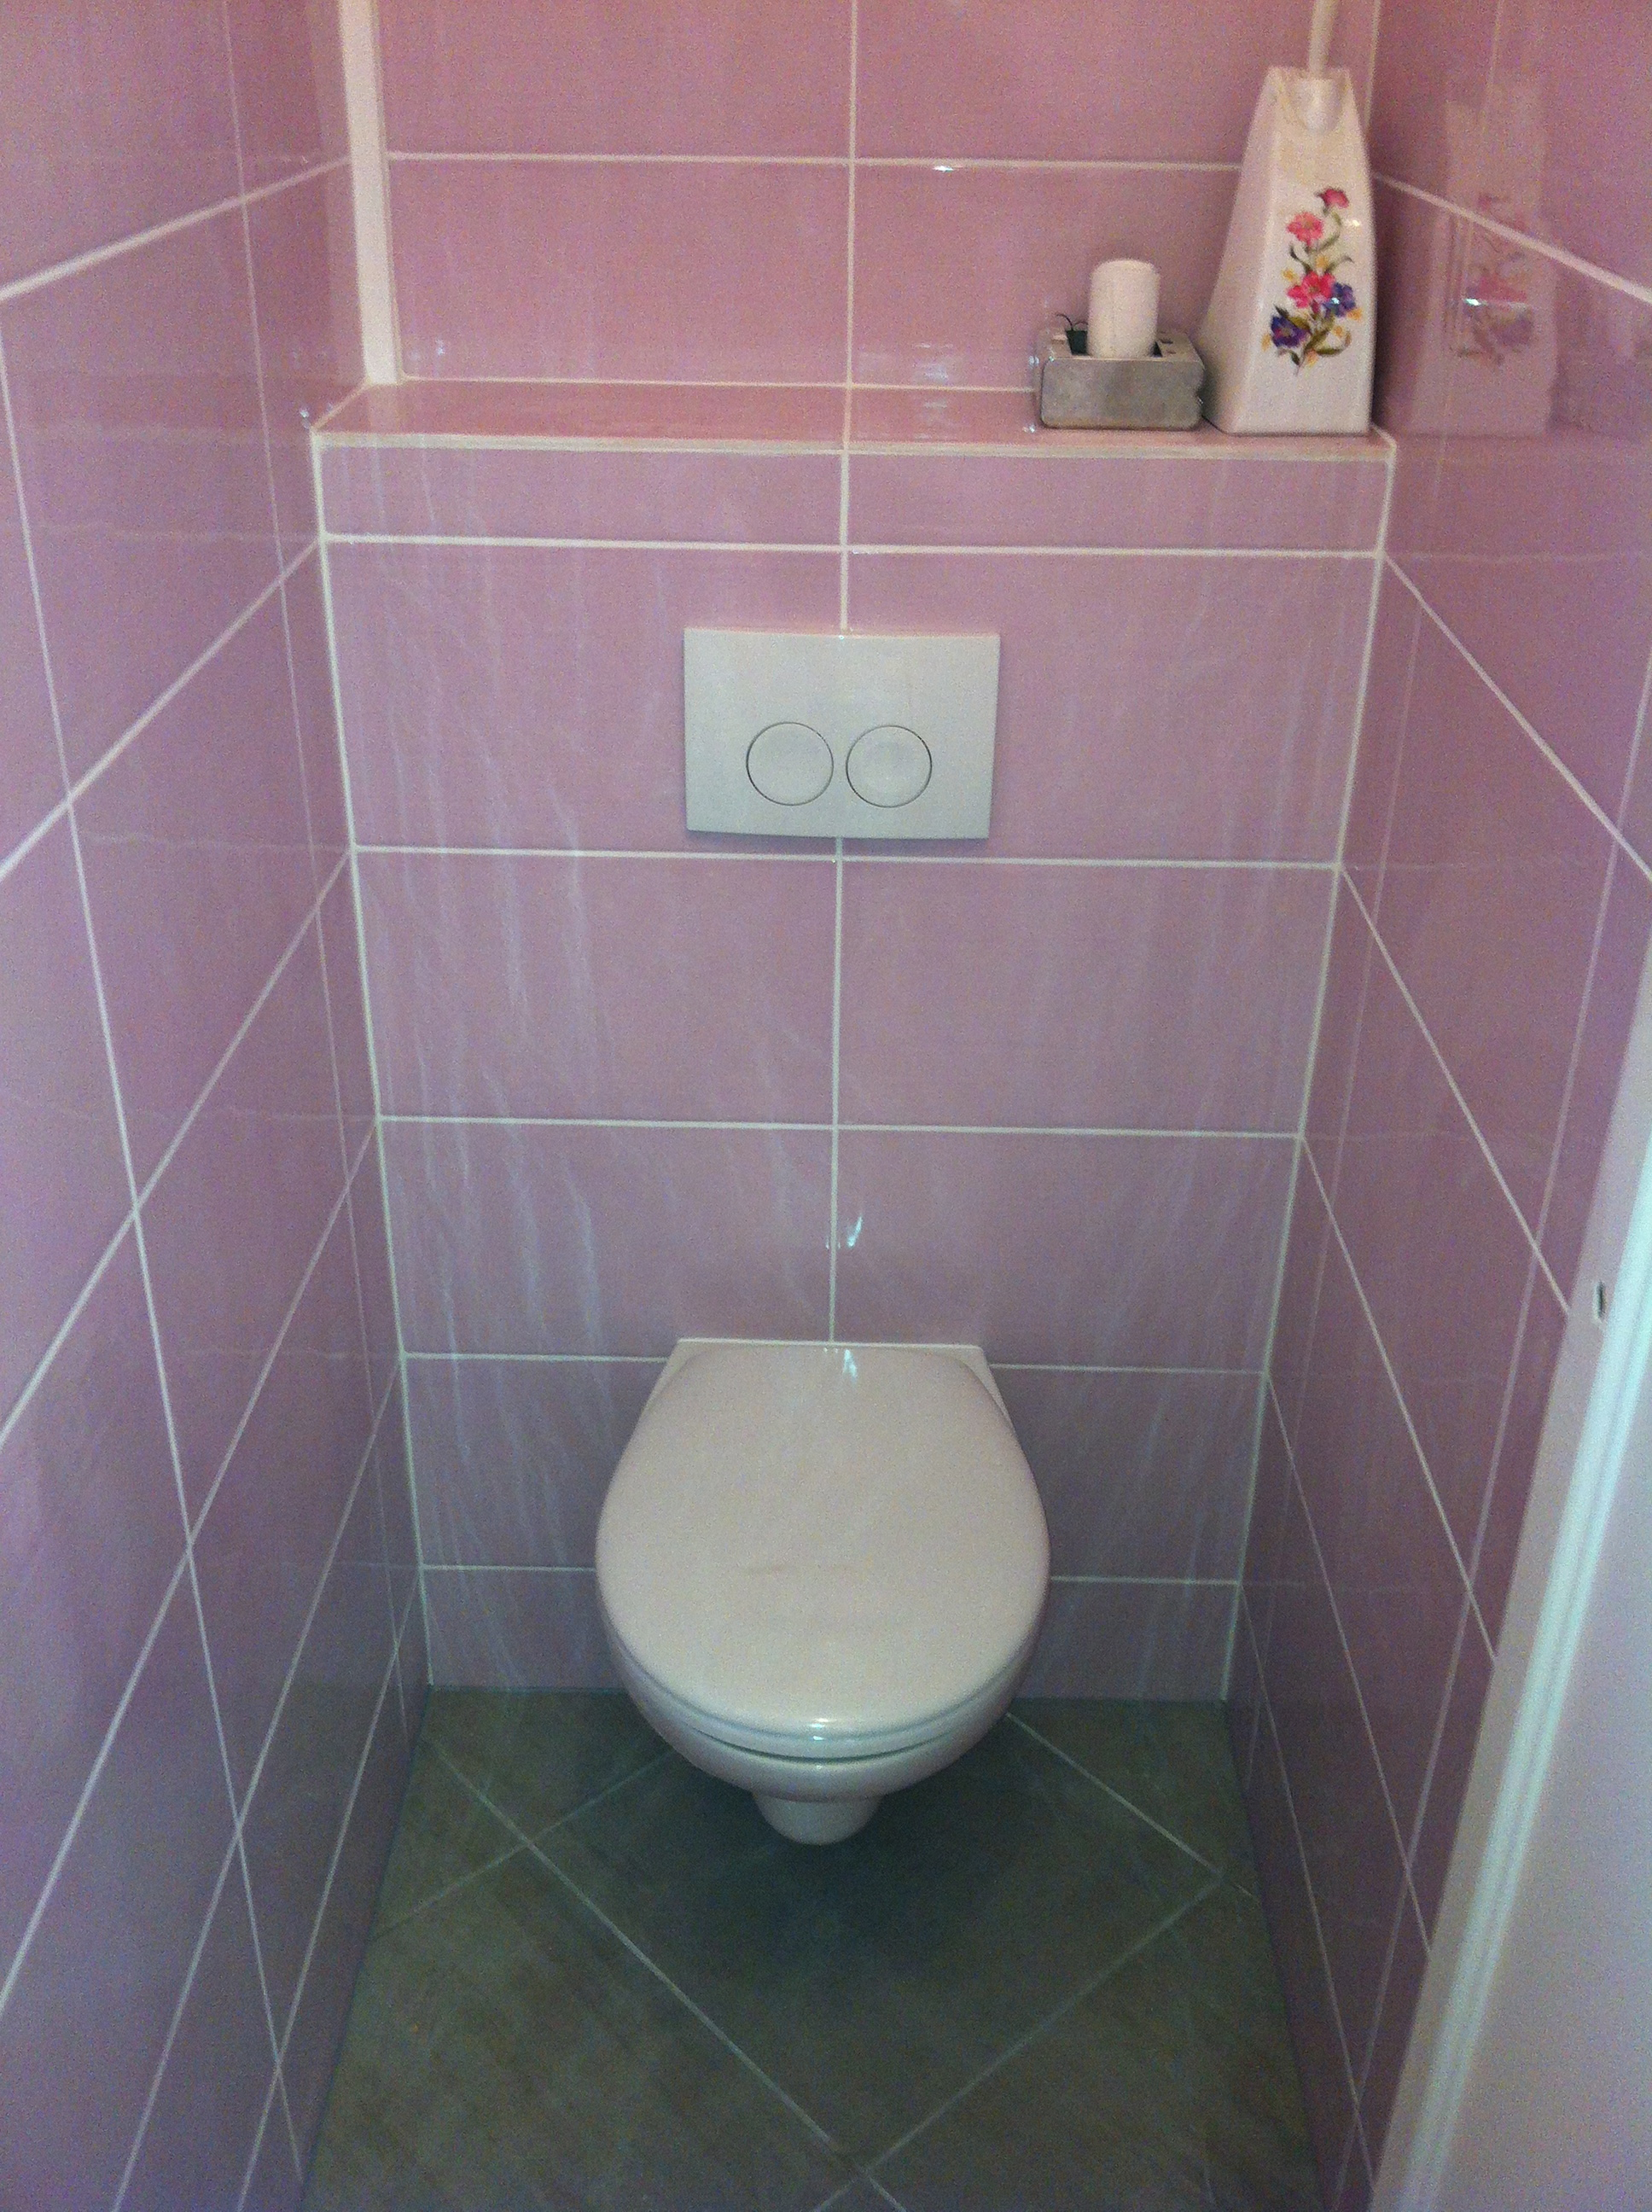 Wc suspendu wc encastr dream house Modele de carrelage pour wc